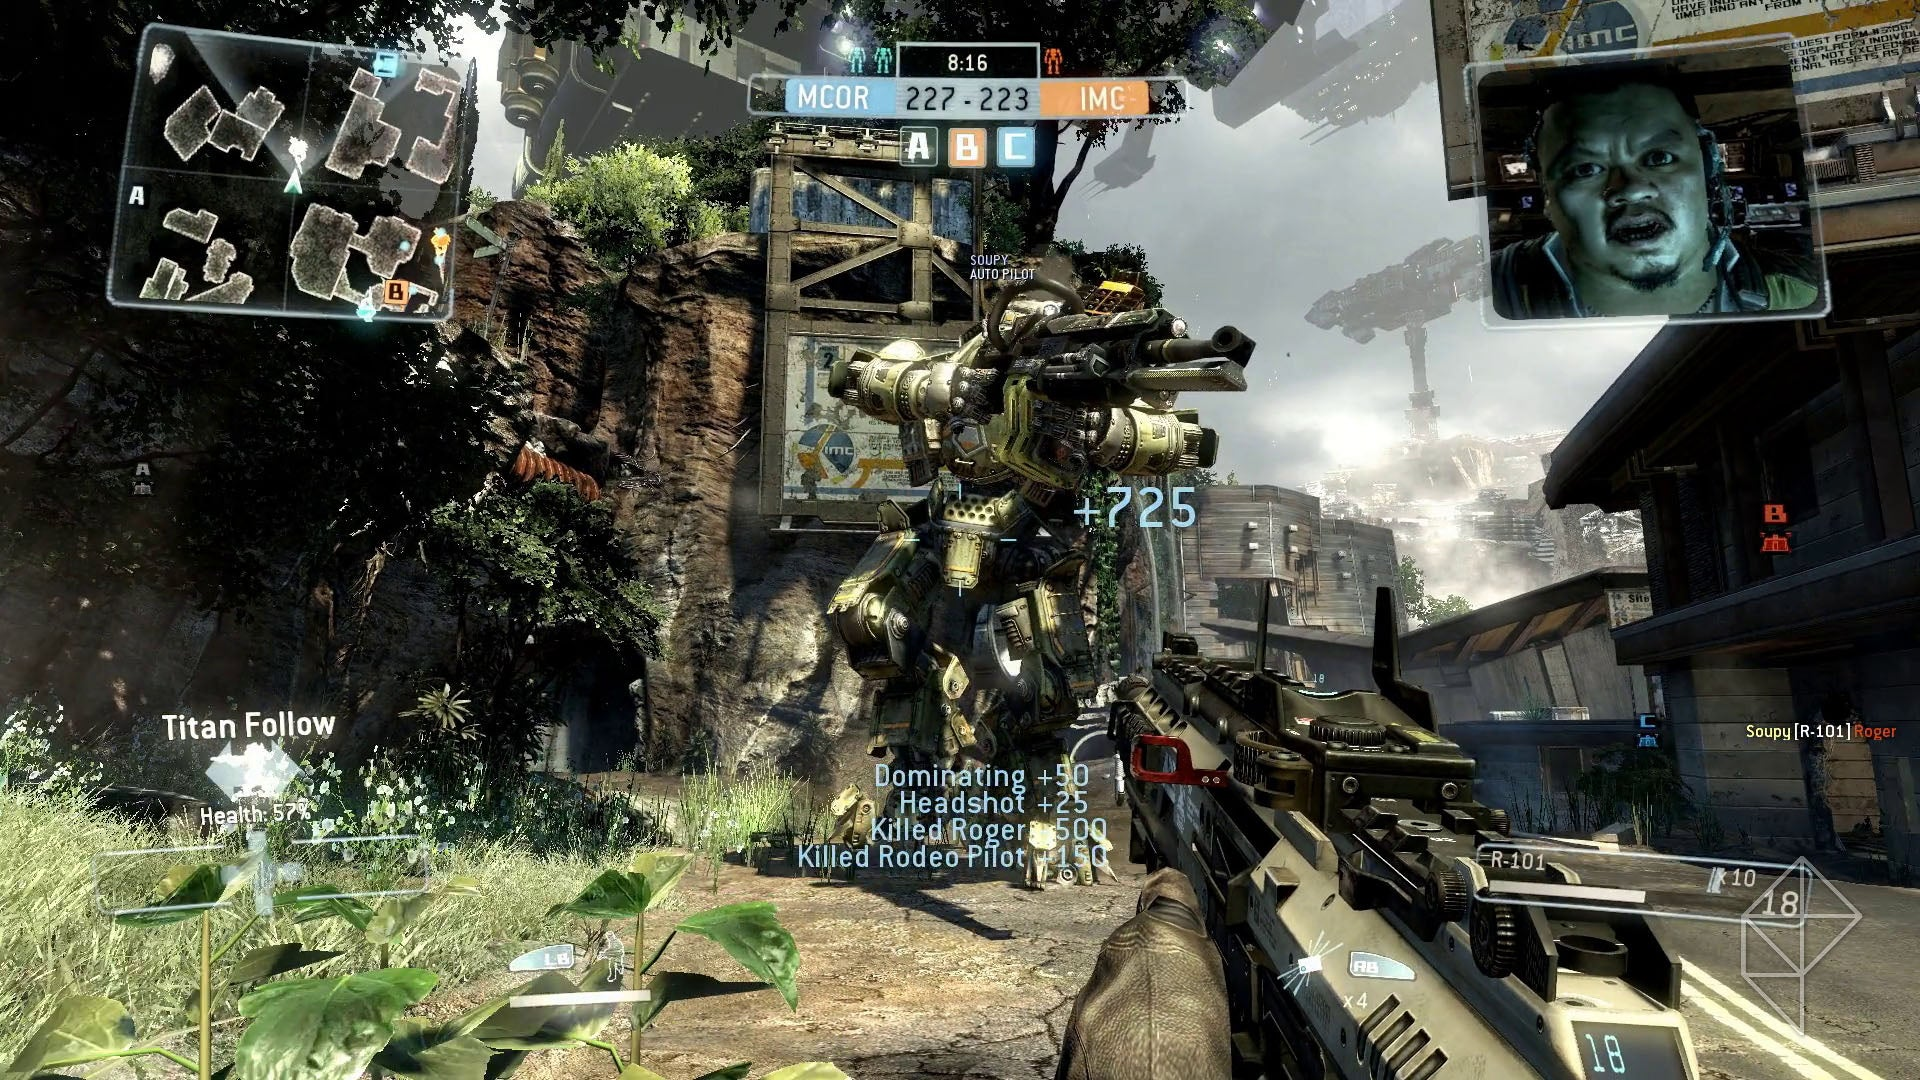 black ops 2 zombies maps free download with Titanfall Pc Impressions Fre Ically Fun Robot Violence When The Servers Work on Watch likewise Watch together with Brilliant Call Of Duty Ww2 Wallpaper moreover Watch moreover Cod Black Ops 3 Game Free Download.